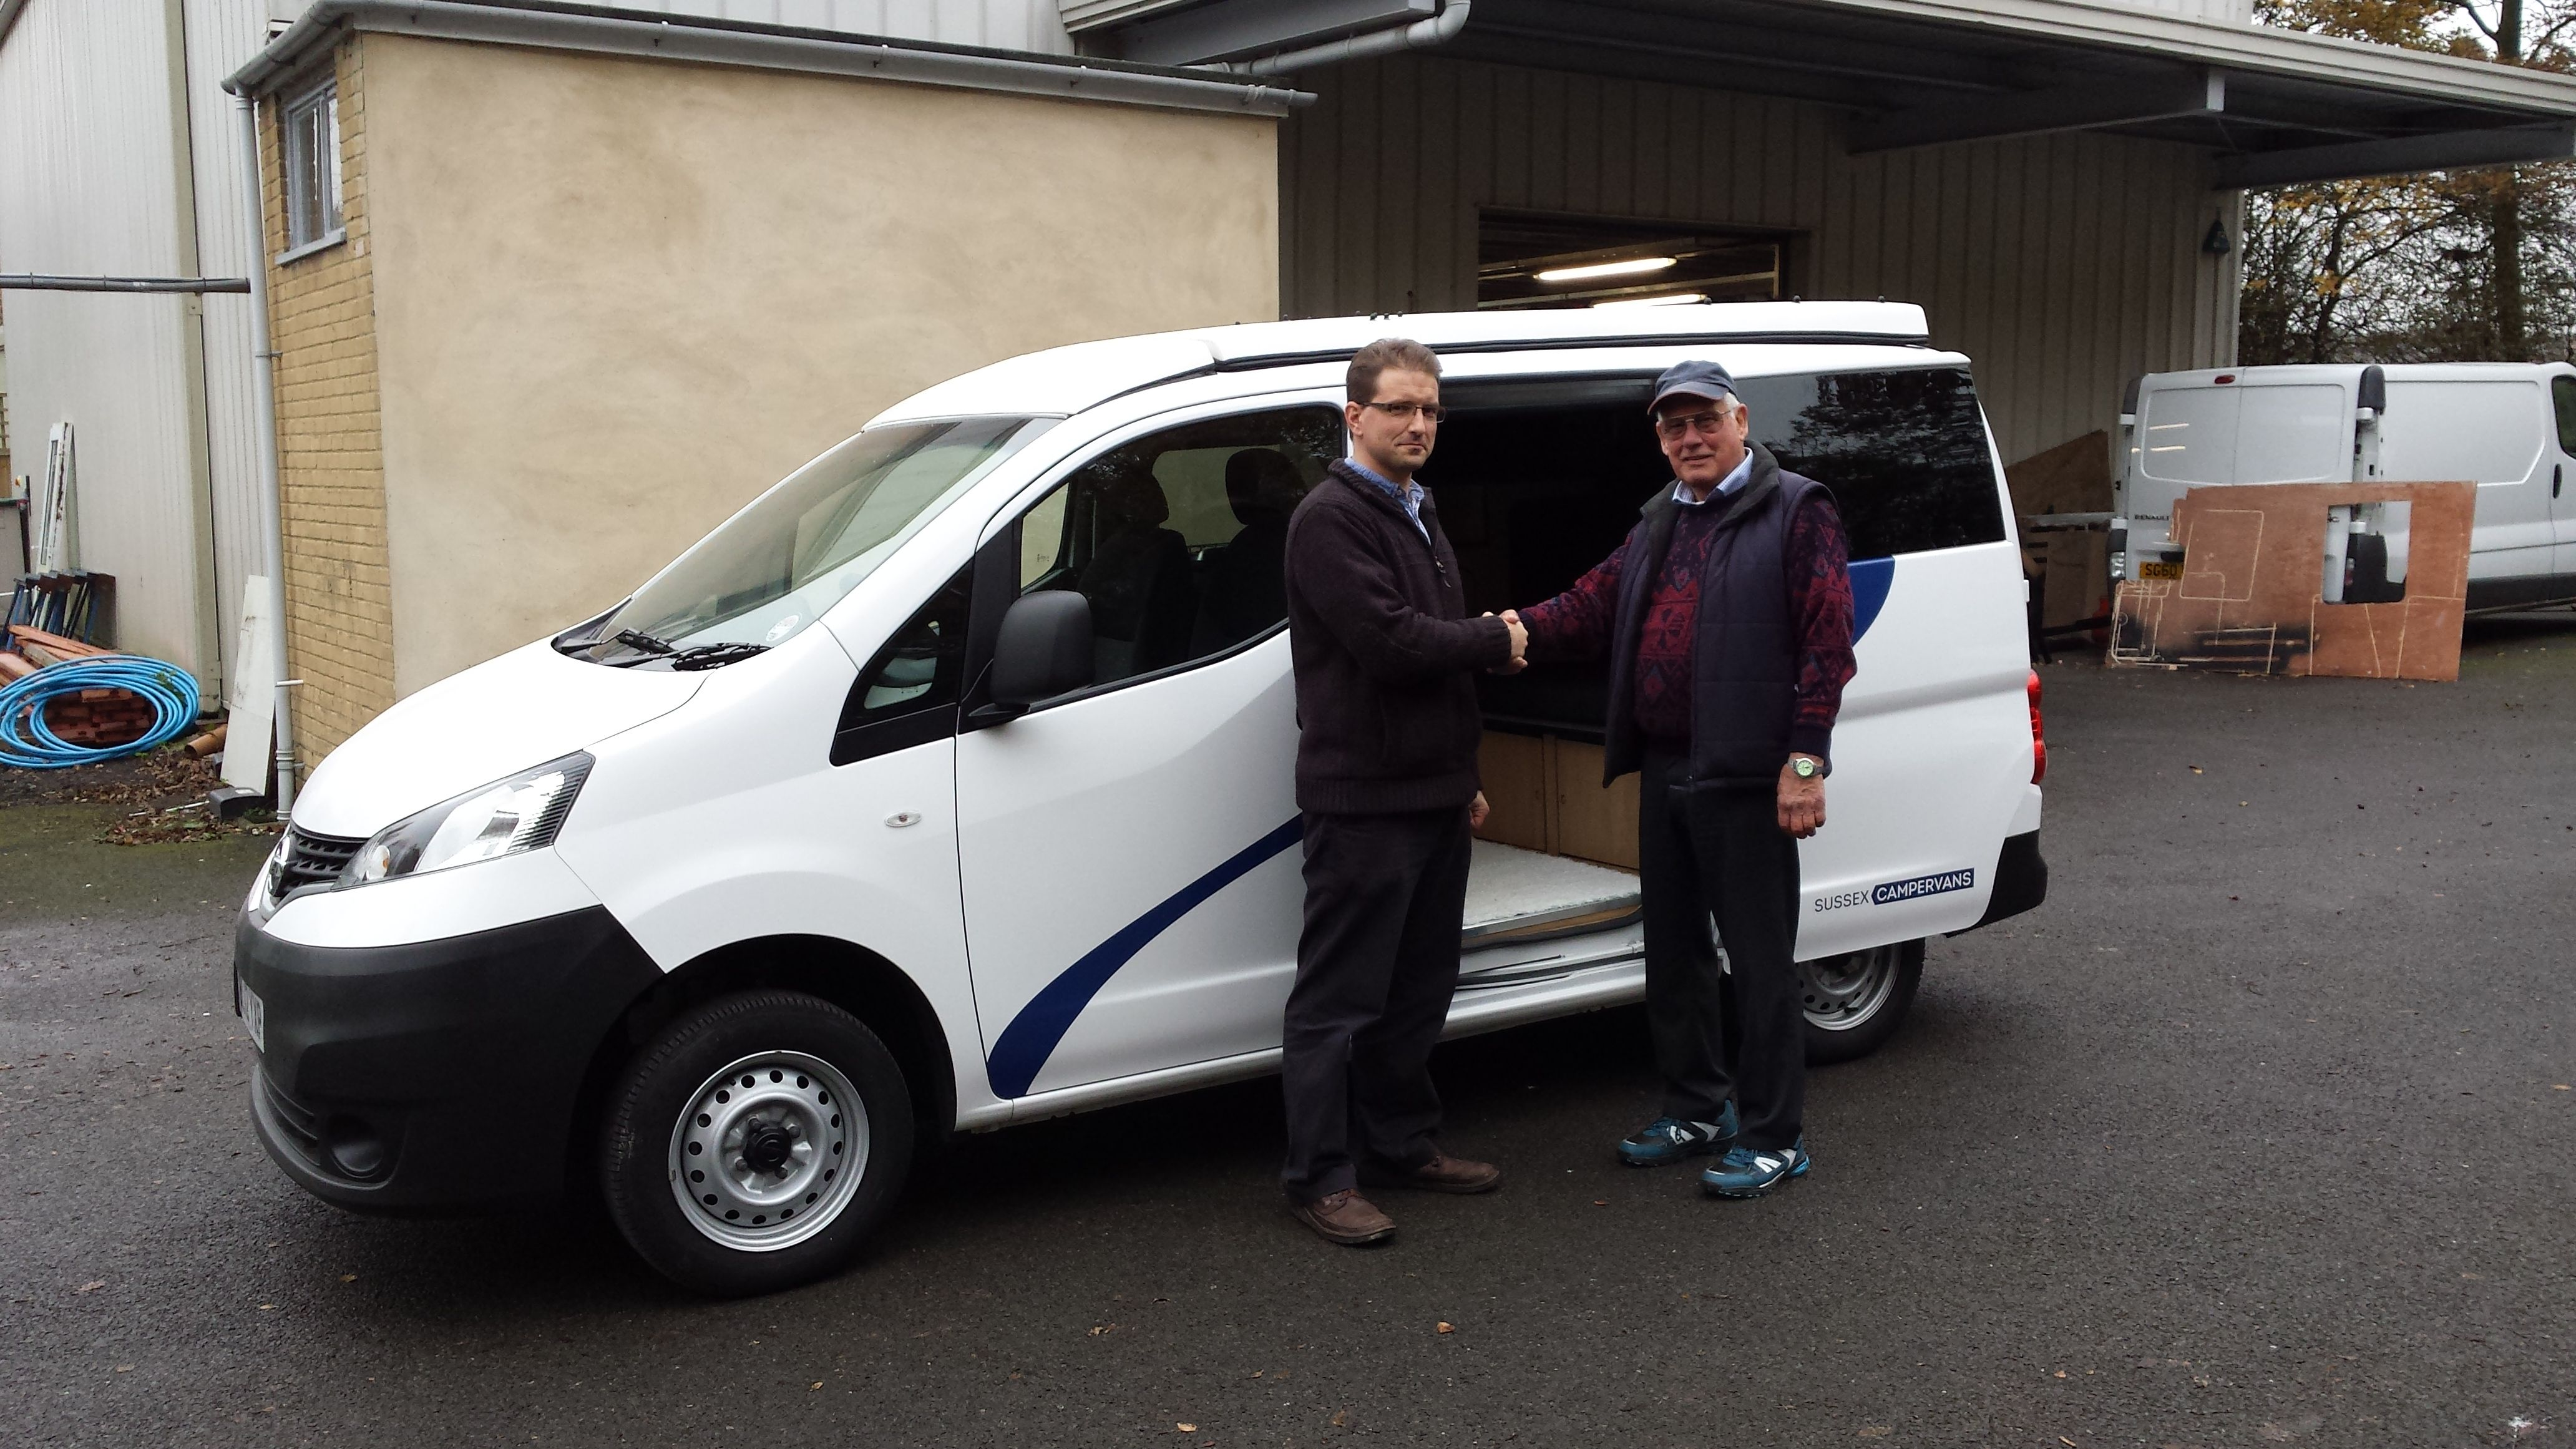 Brian collected his nv200 campervan conversion from us recently as well we love his choice